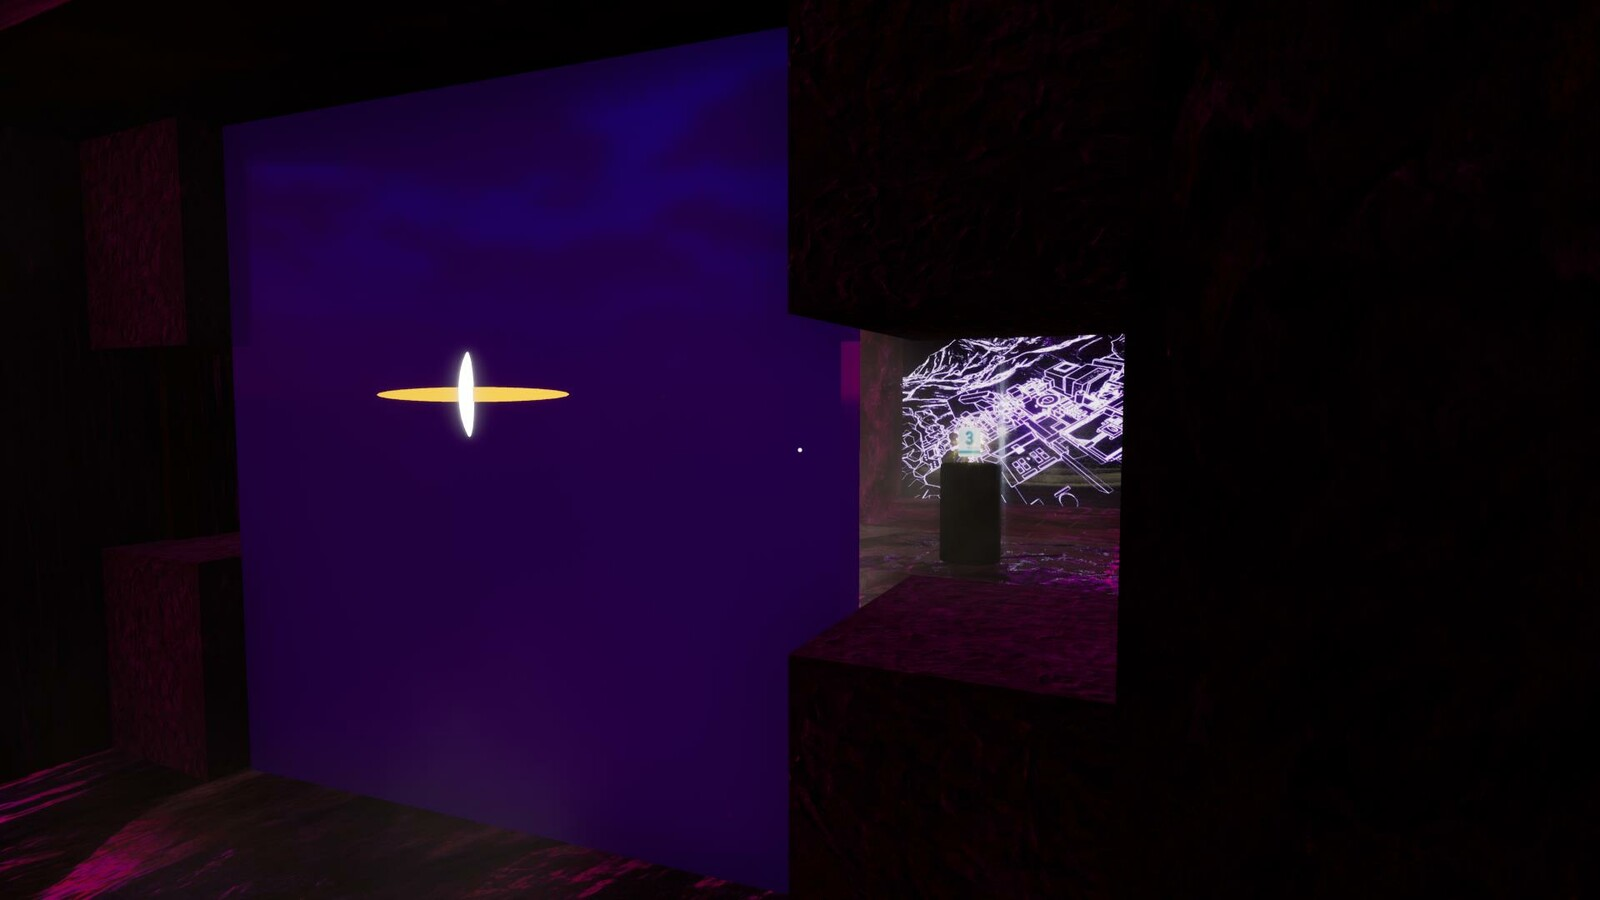 Downstairs in the Level Design Shrine, the player can see the 3D modeling software they will need to complete parts of the game but they cannot activate it without enough ideas.